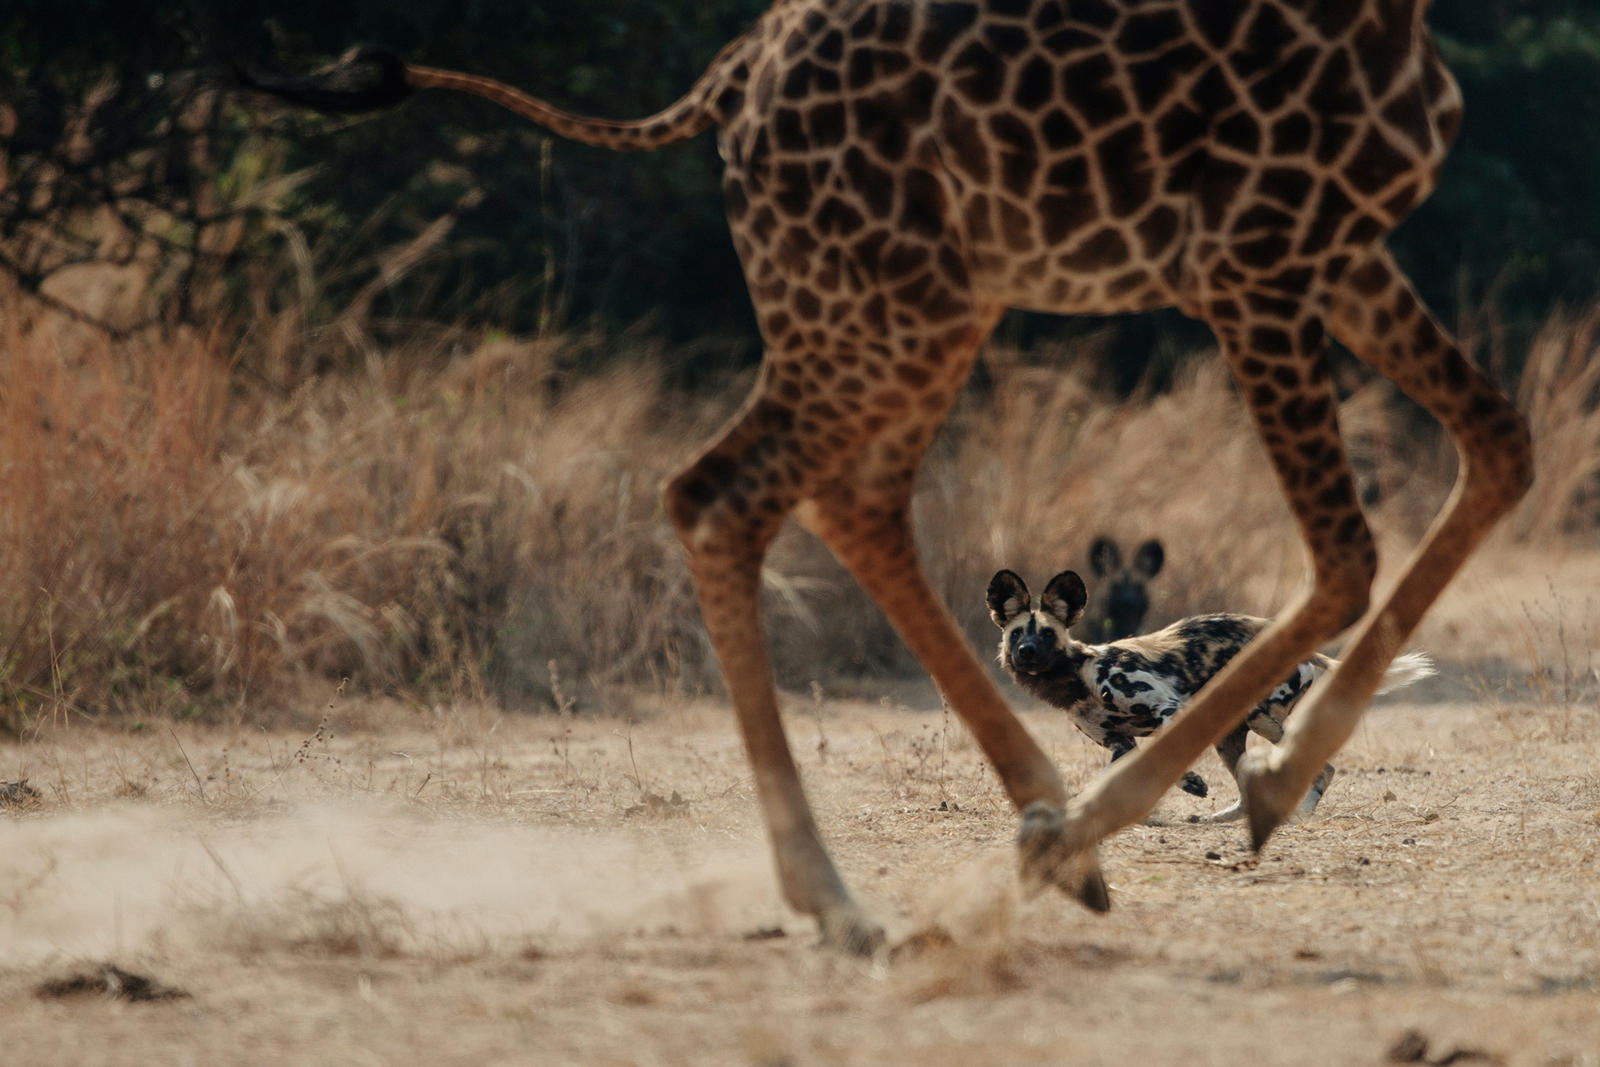 African Wild dog chases giraffe